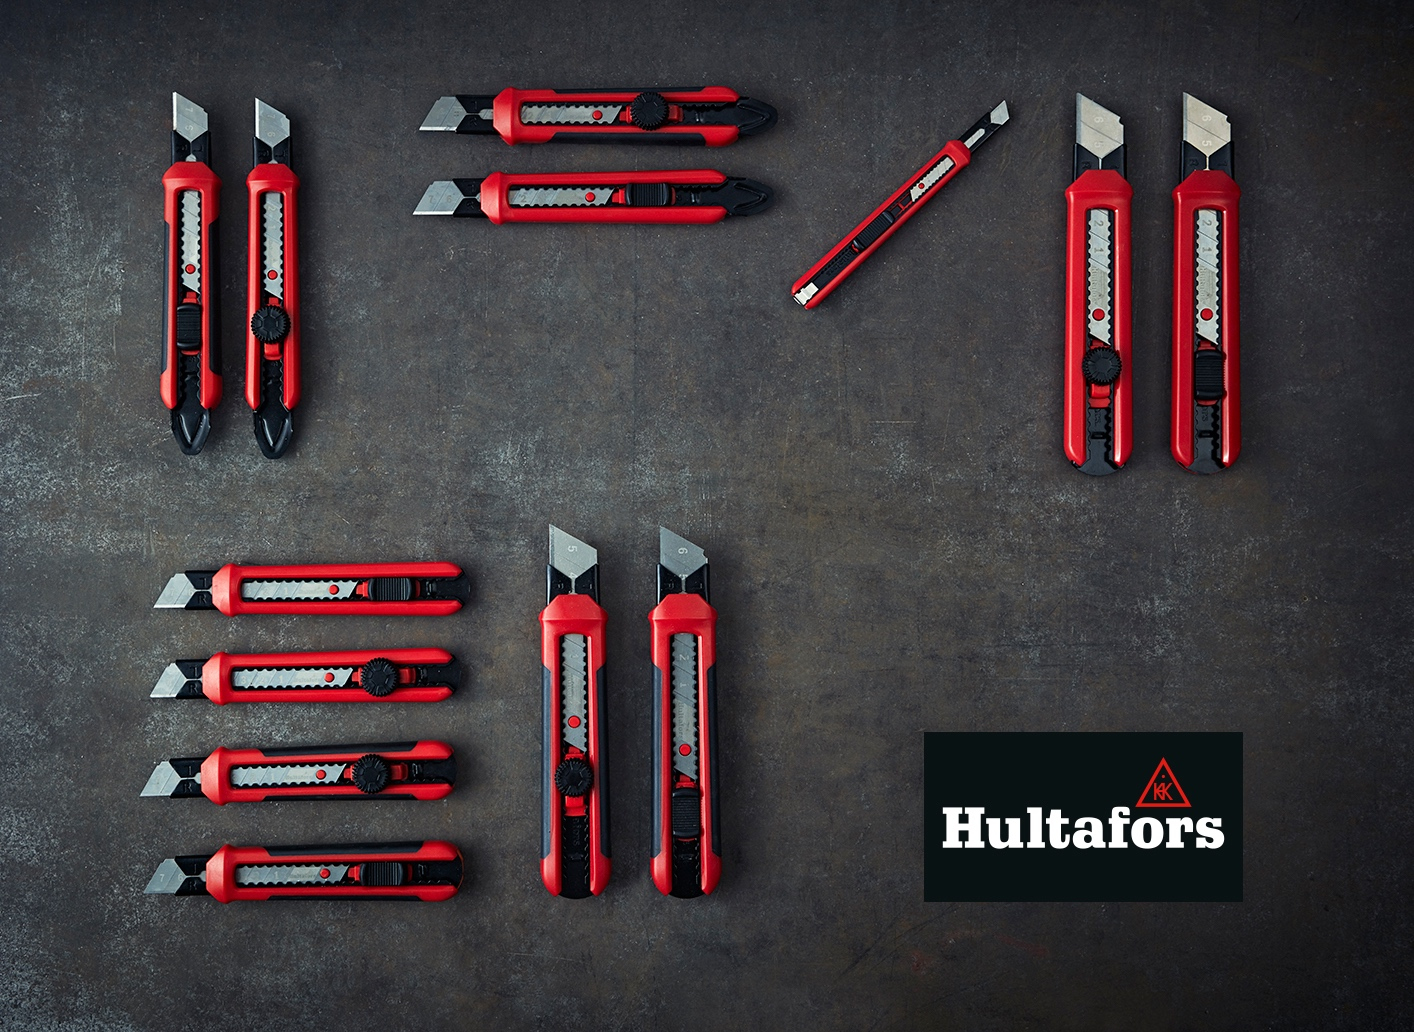 Adaptable knives from Hultafors Tools